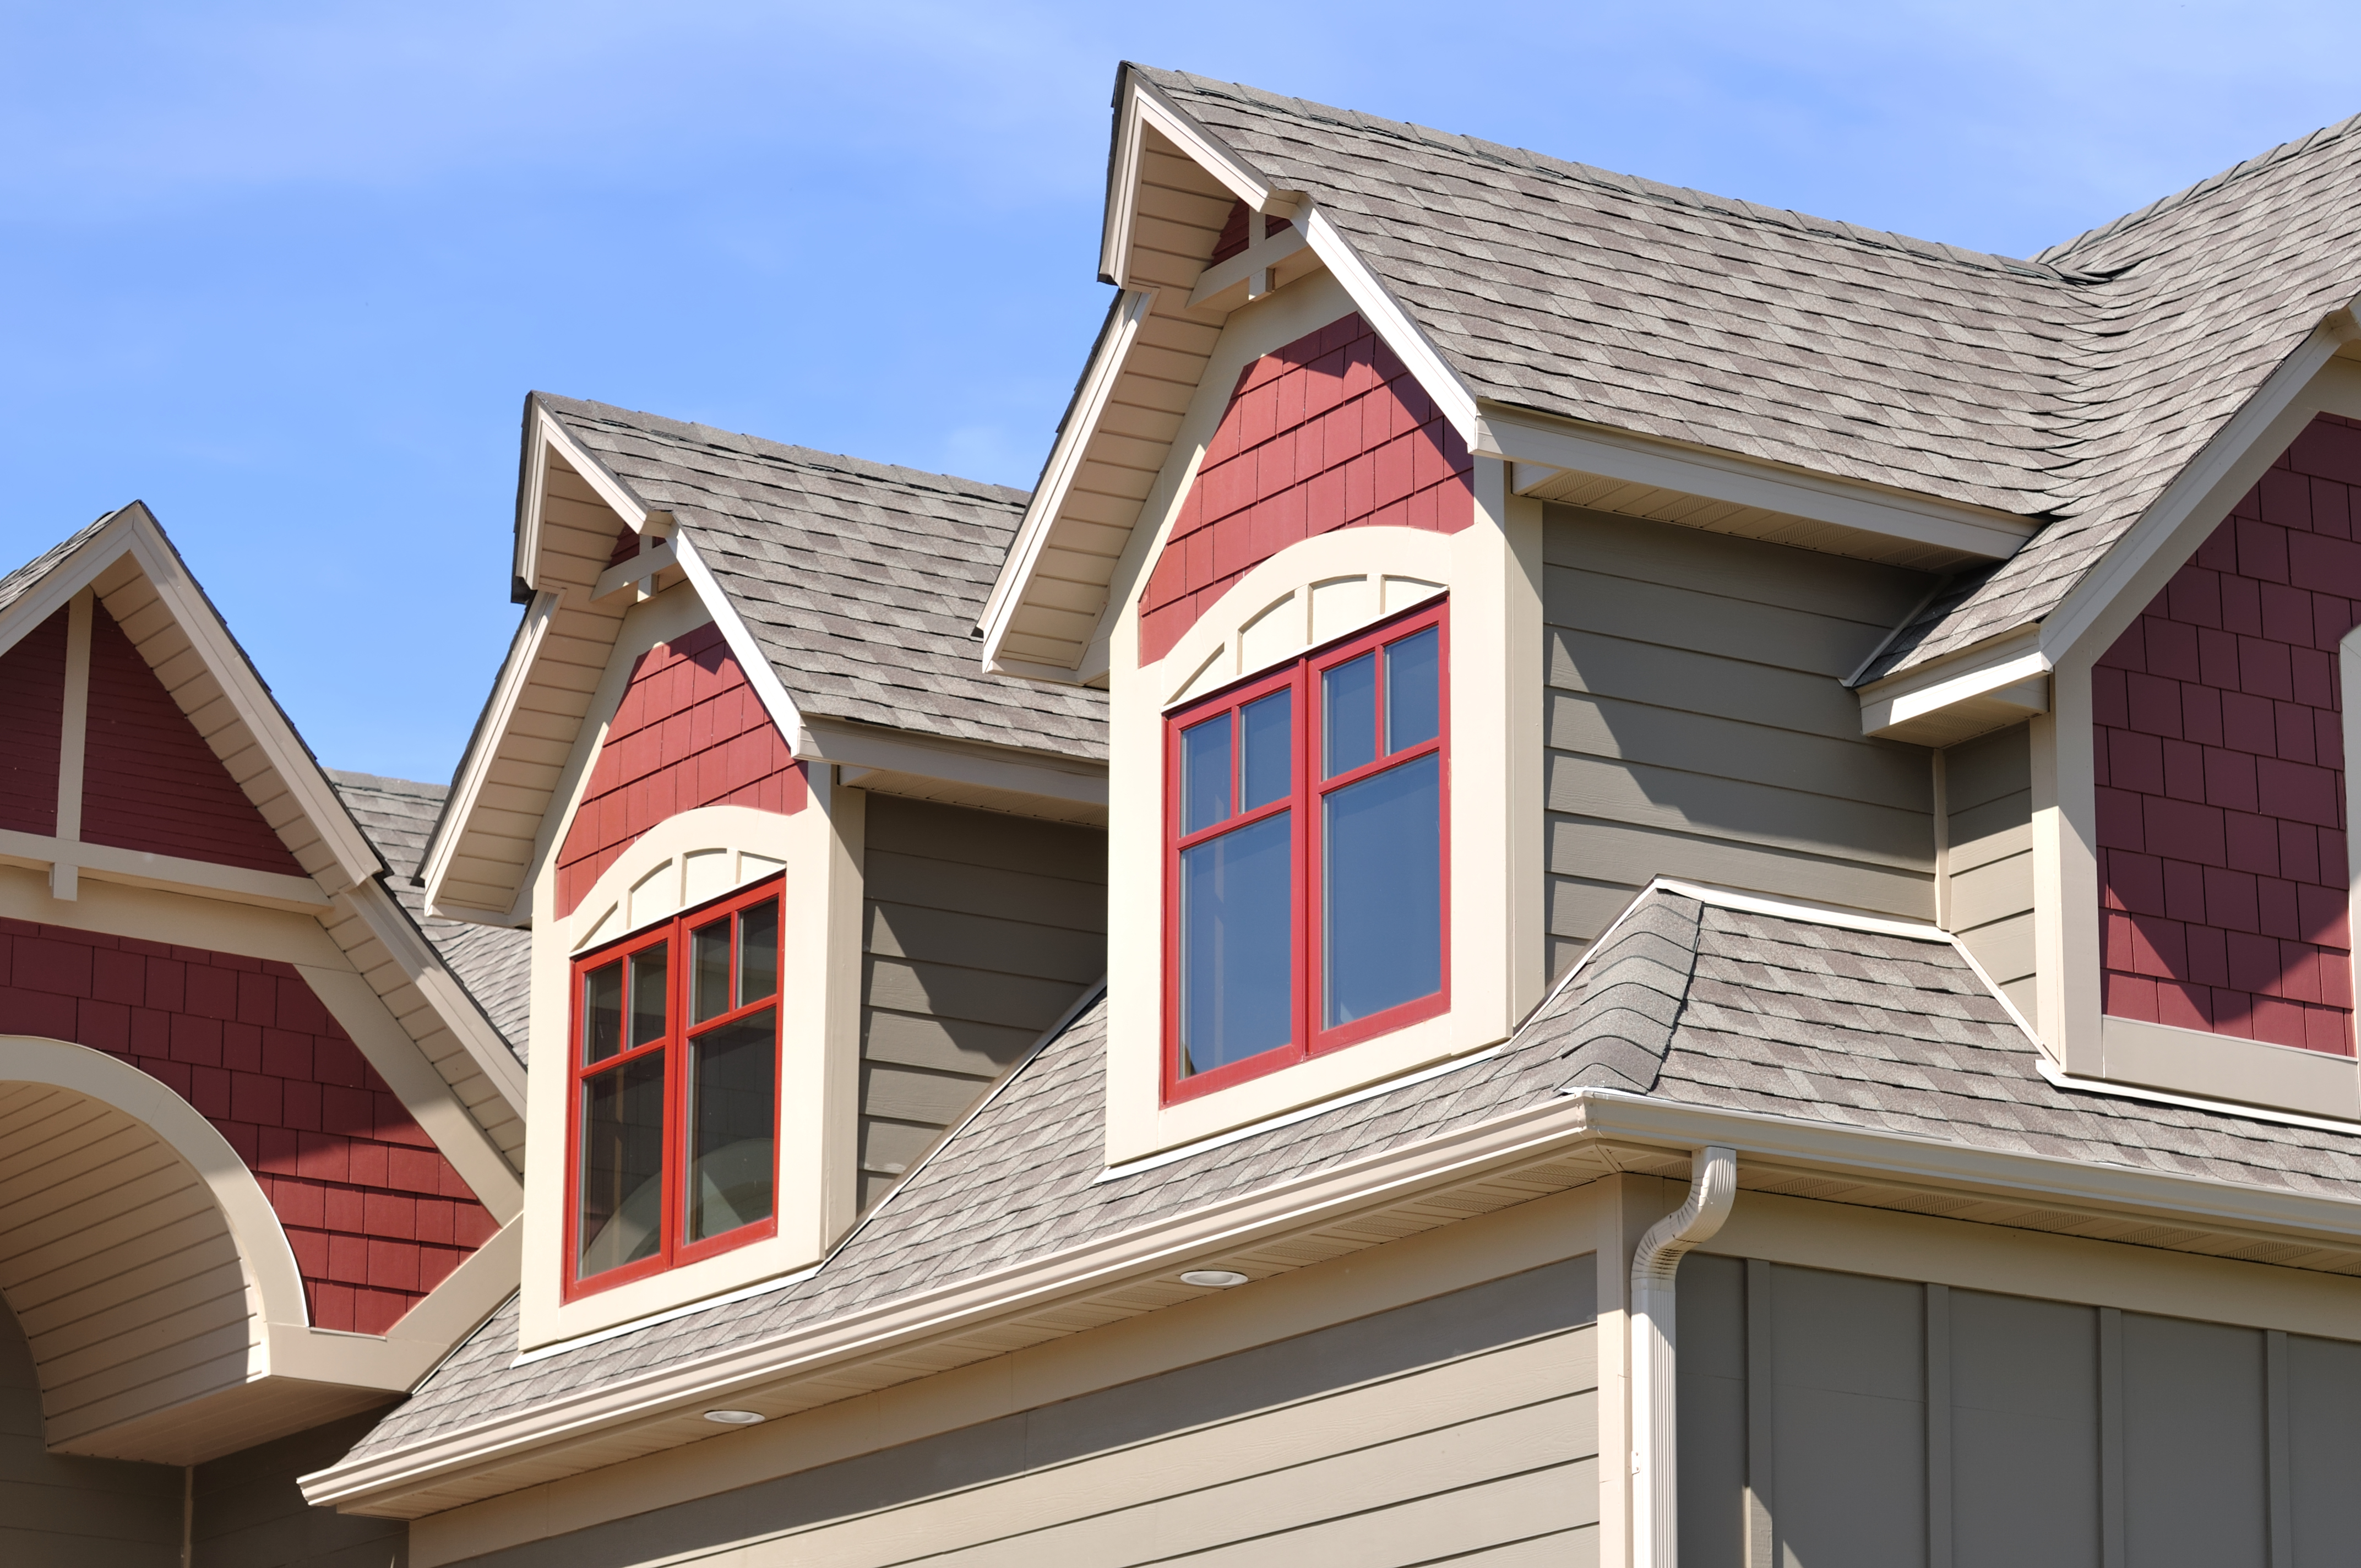 Roofing services in Maryland